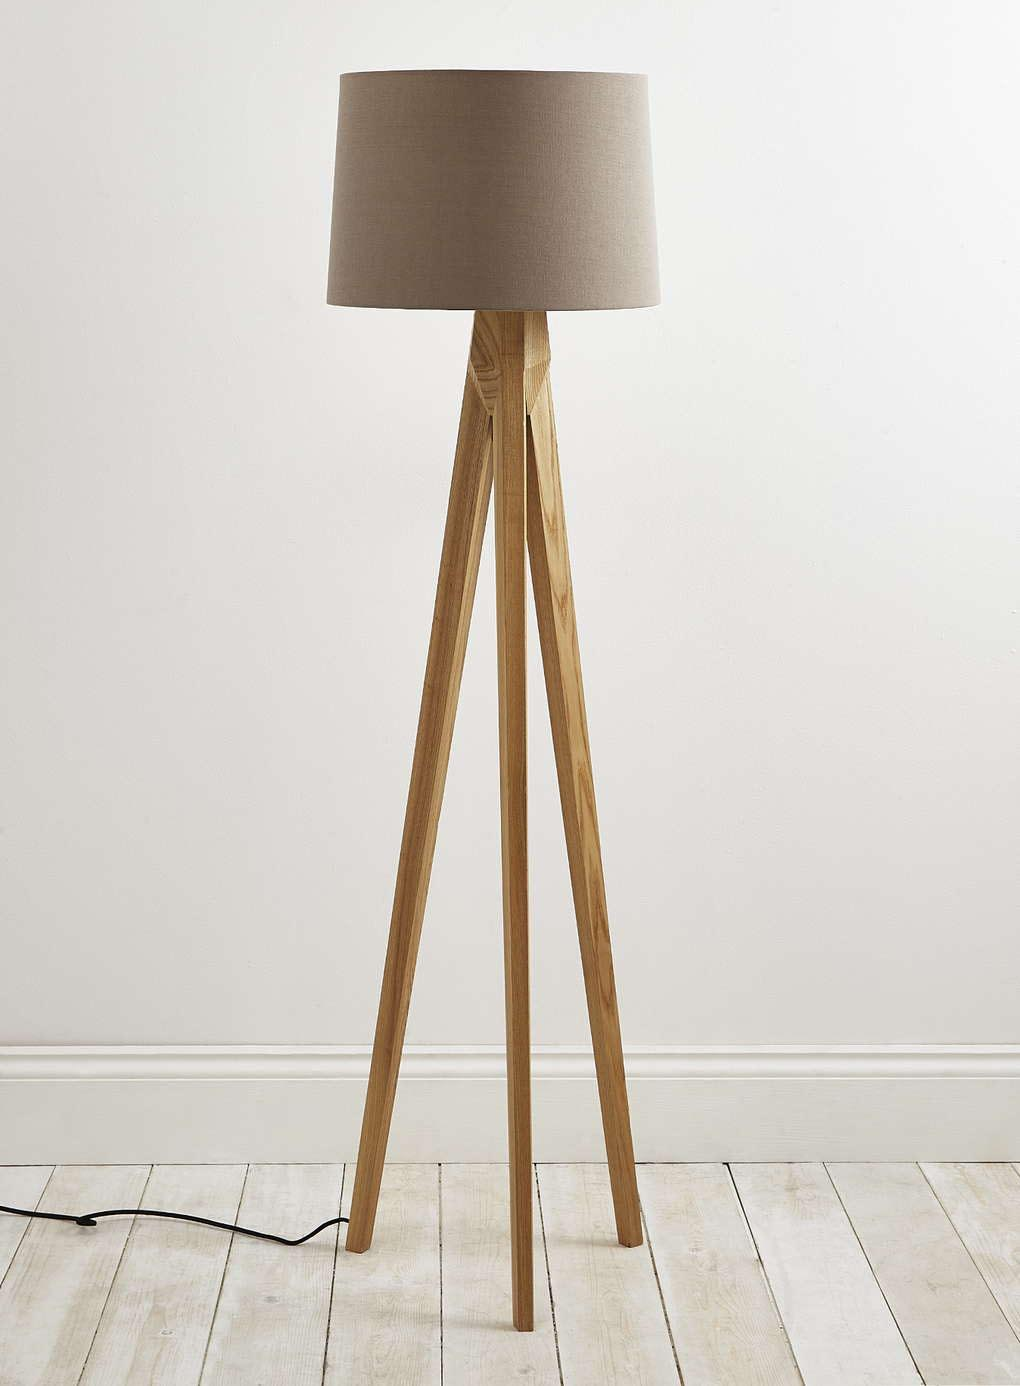 tripod-floor-lamp-wooden-legs